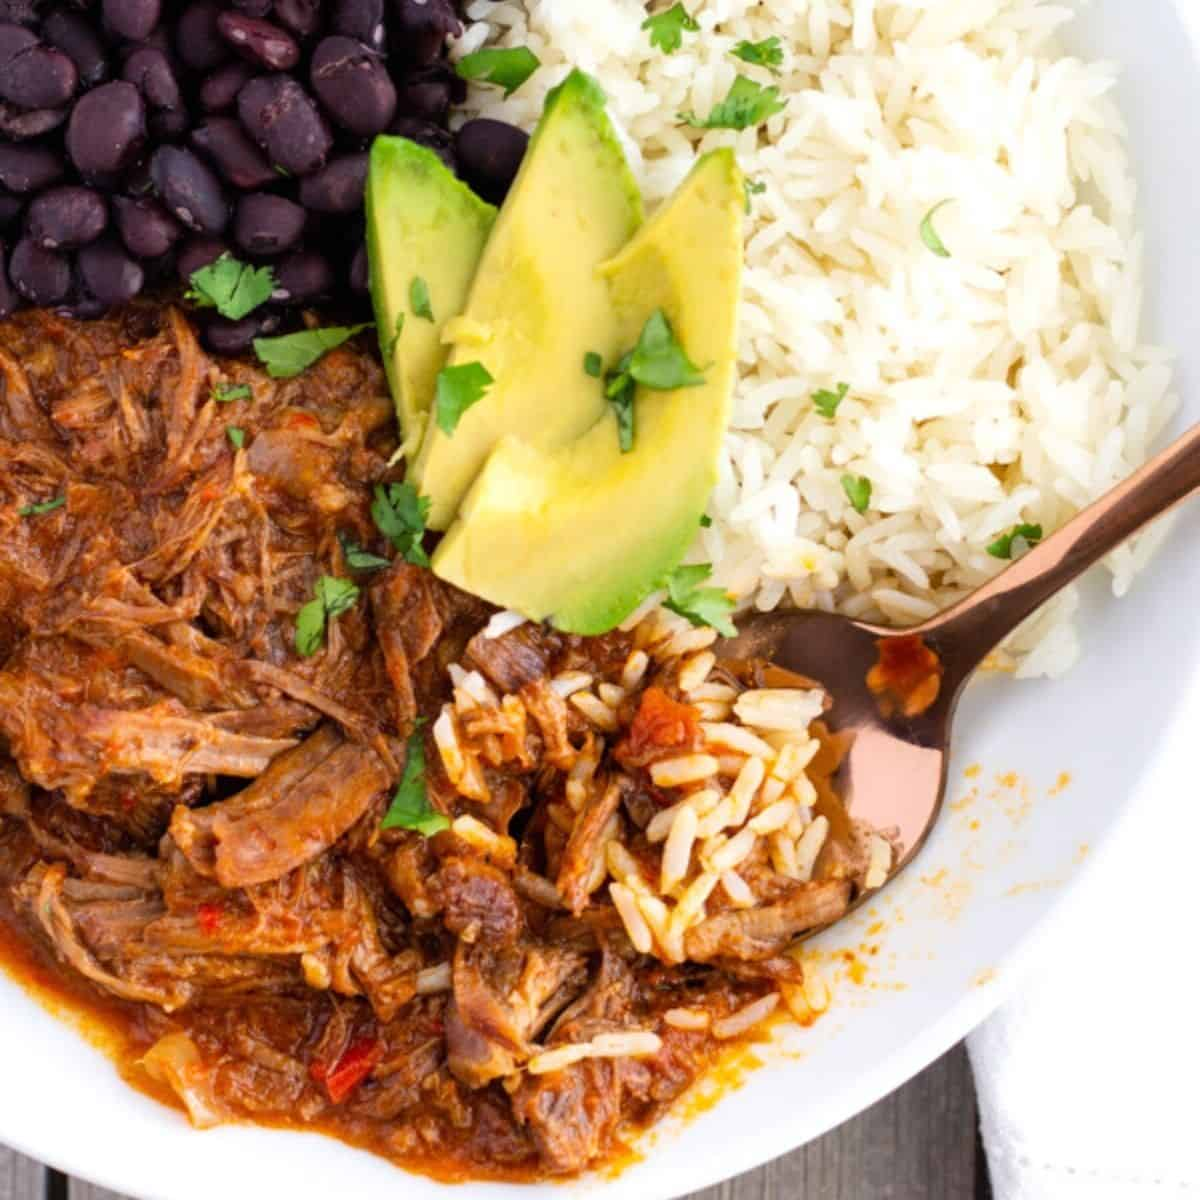 Red shredded beef, white rice, black beans, and sliced avocado on top.